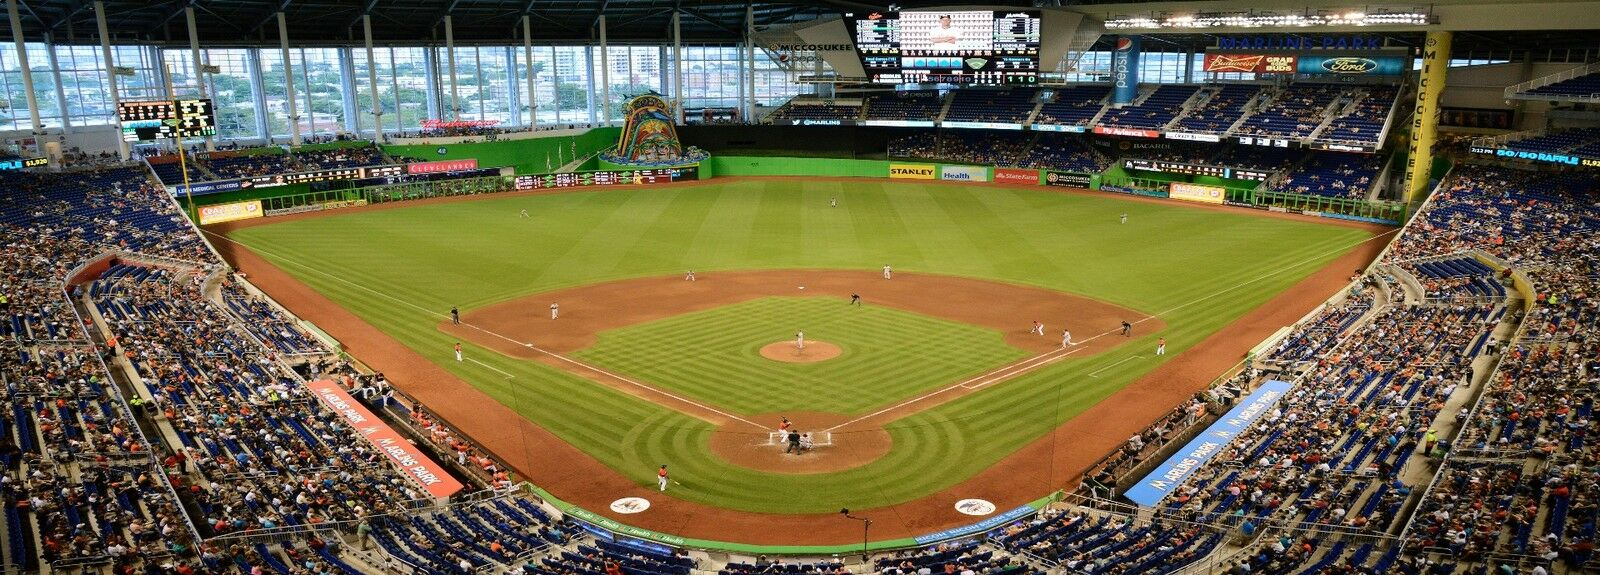 New York mets at Miami Marlins Spring Training